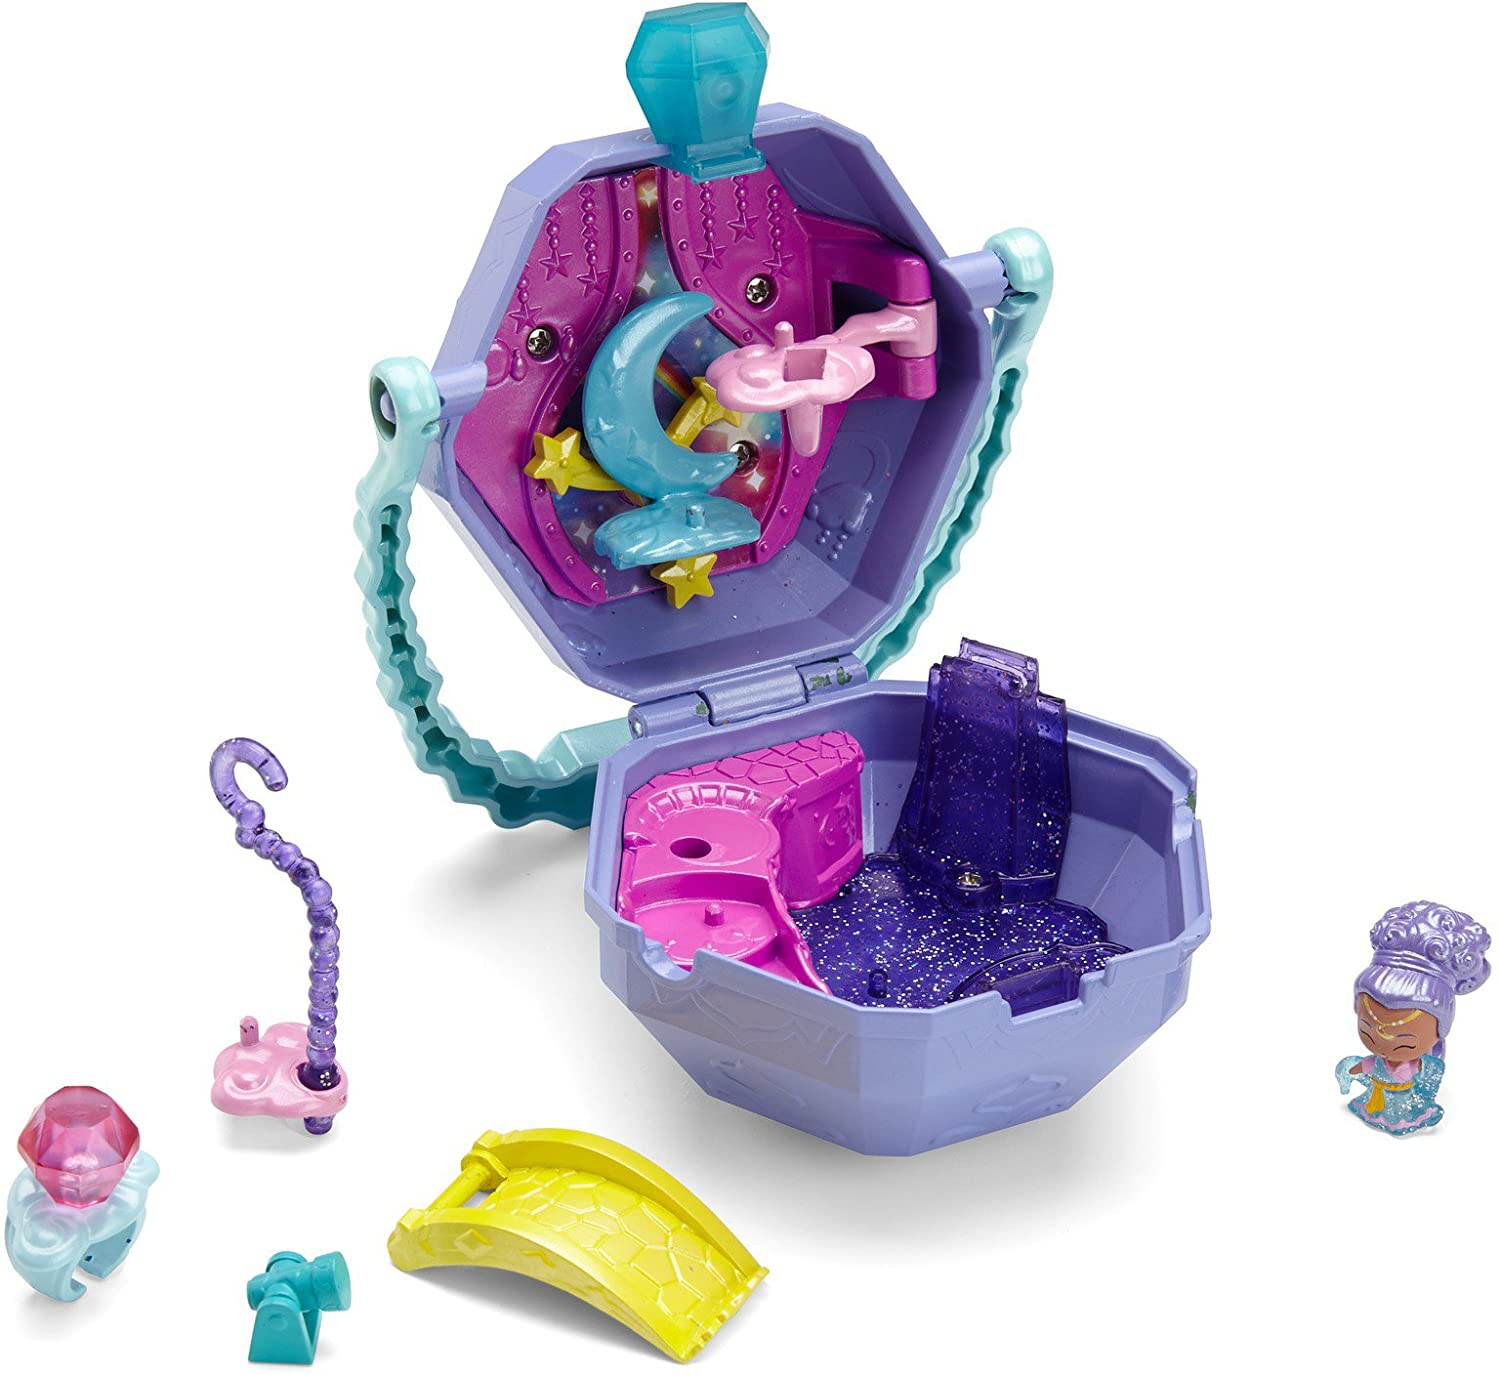 Fisher-Price Nickelodeon Shimmer & Shine, Teenie Genies, Dream Genie's Palace On-The-Go Playset Mattel FPW01